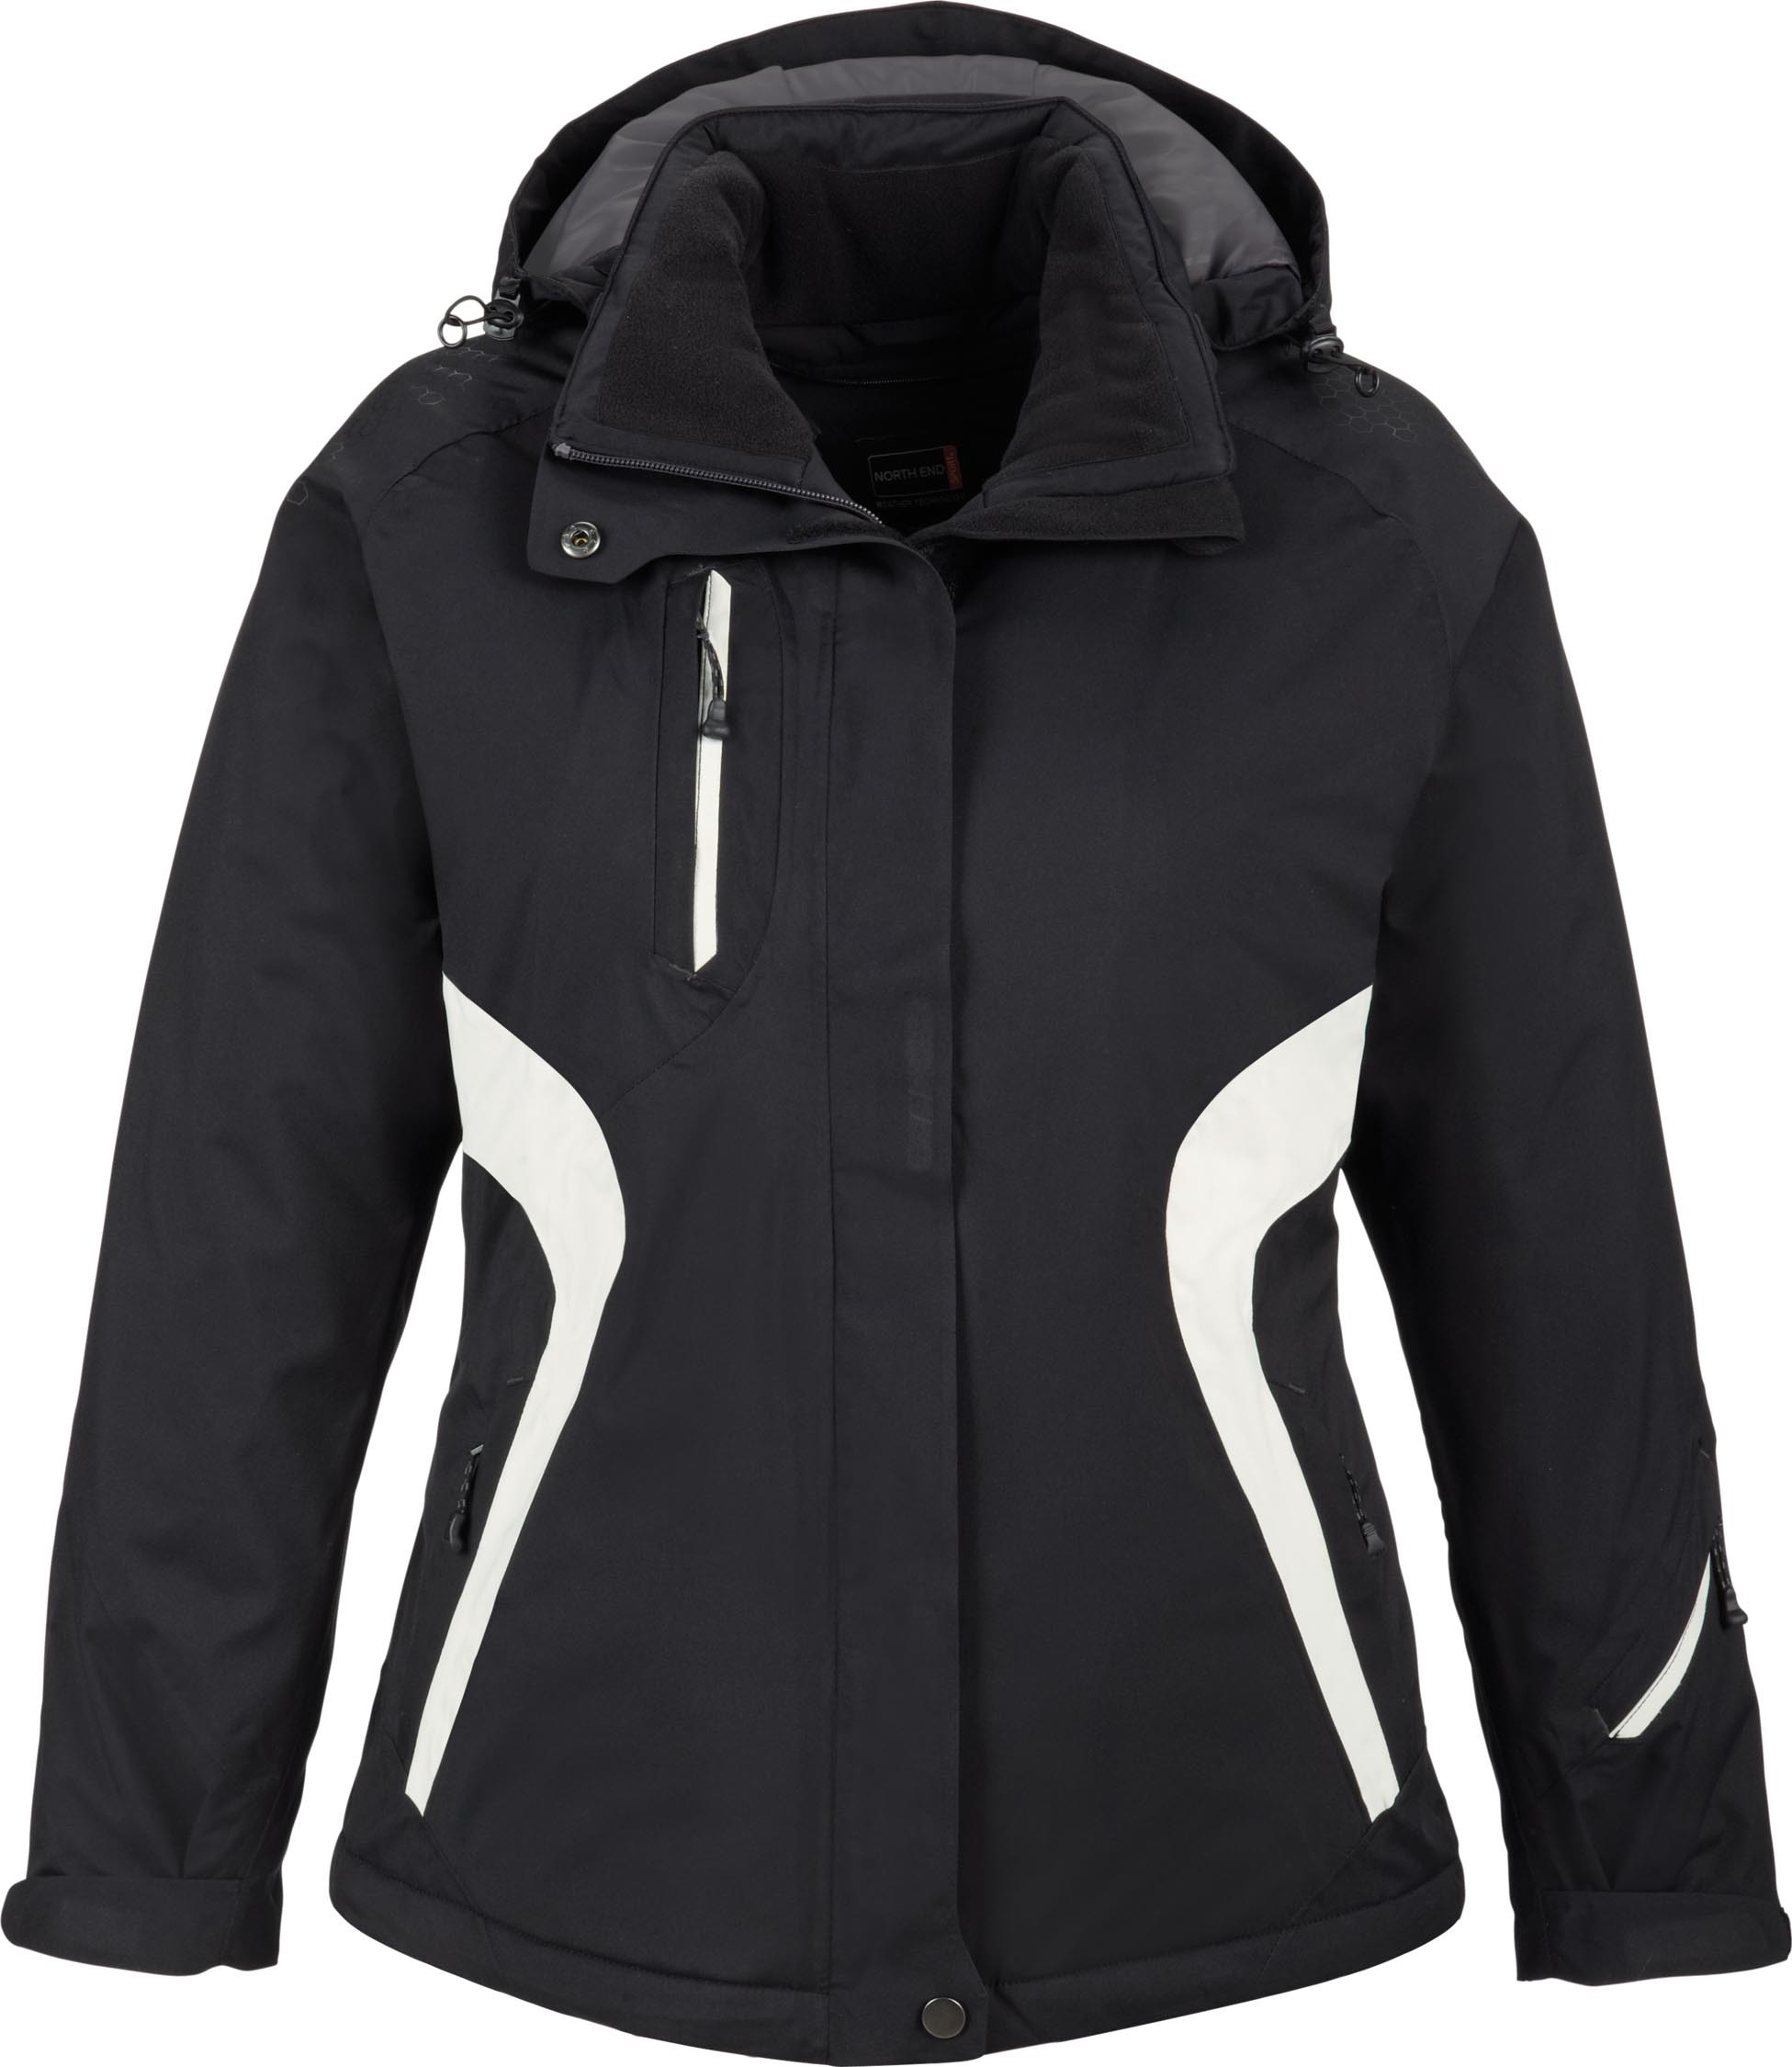 Ash City UTK 3 Warm.Logik 78664 - Apex Ladies' Insulated ...